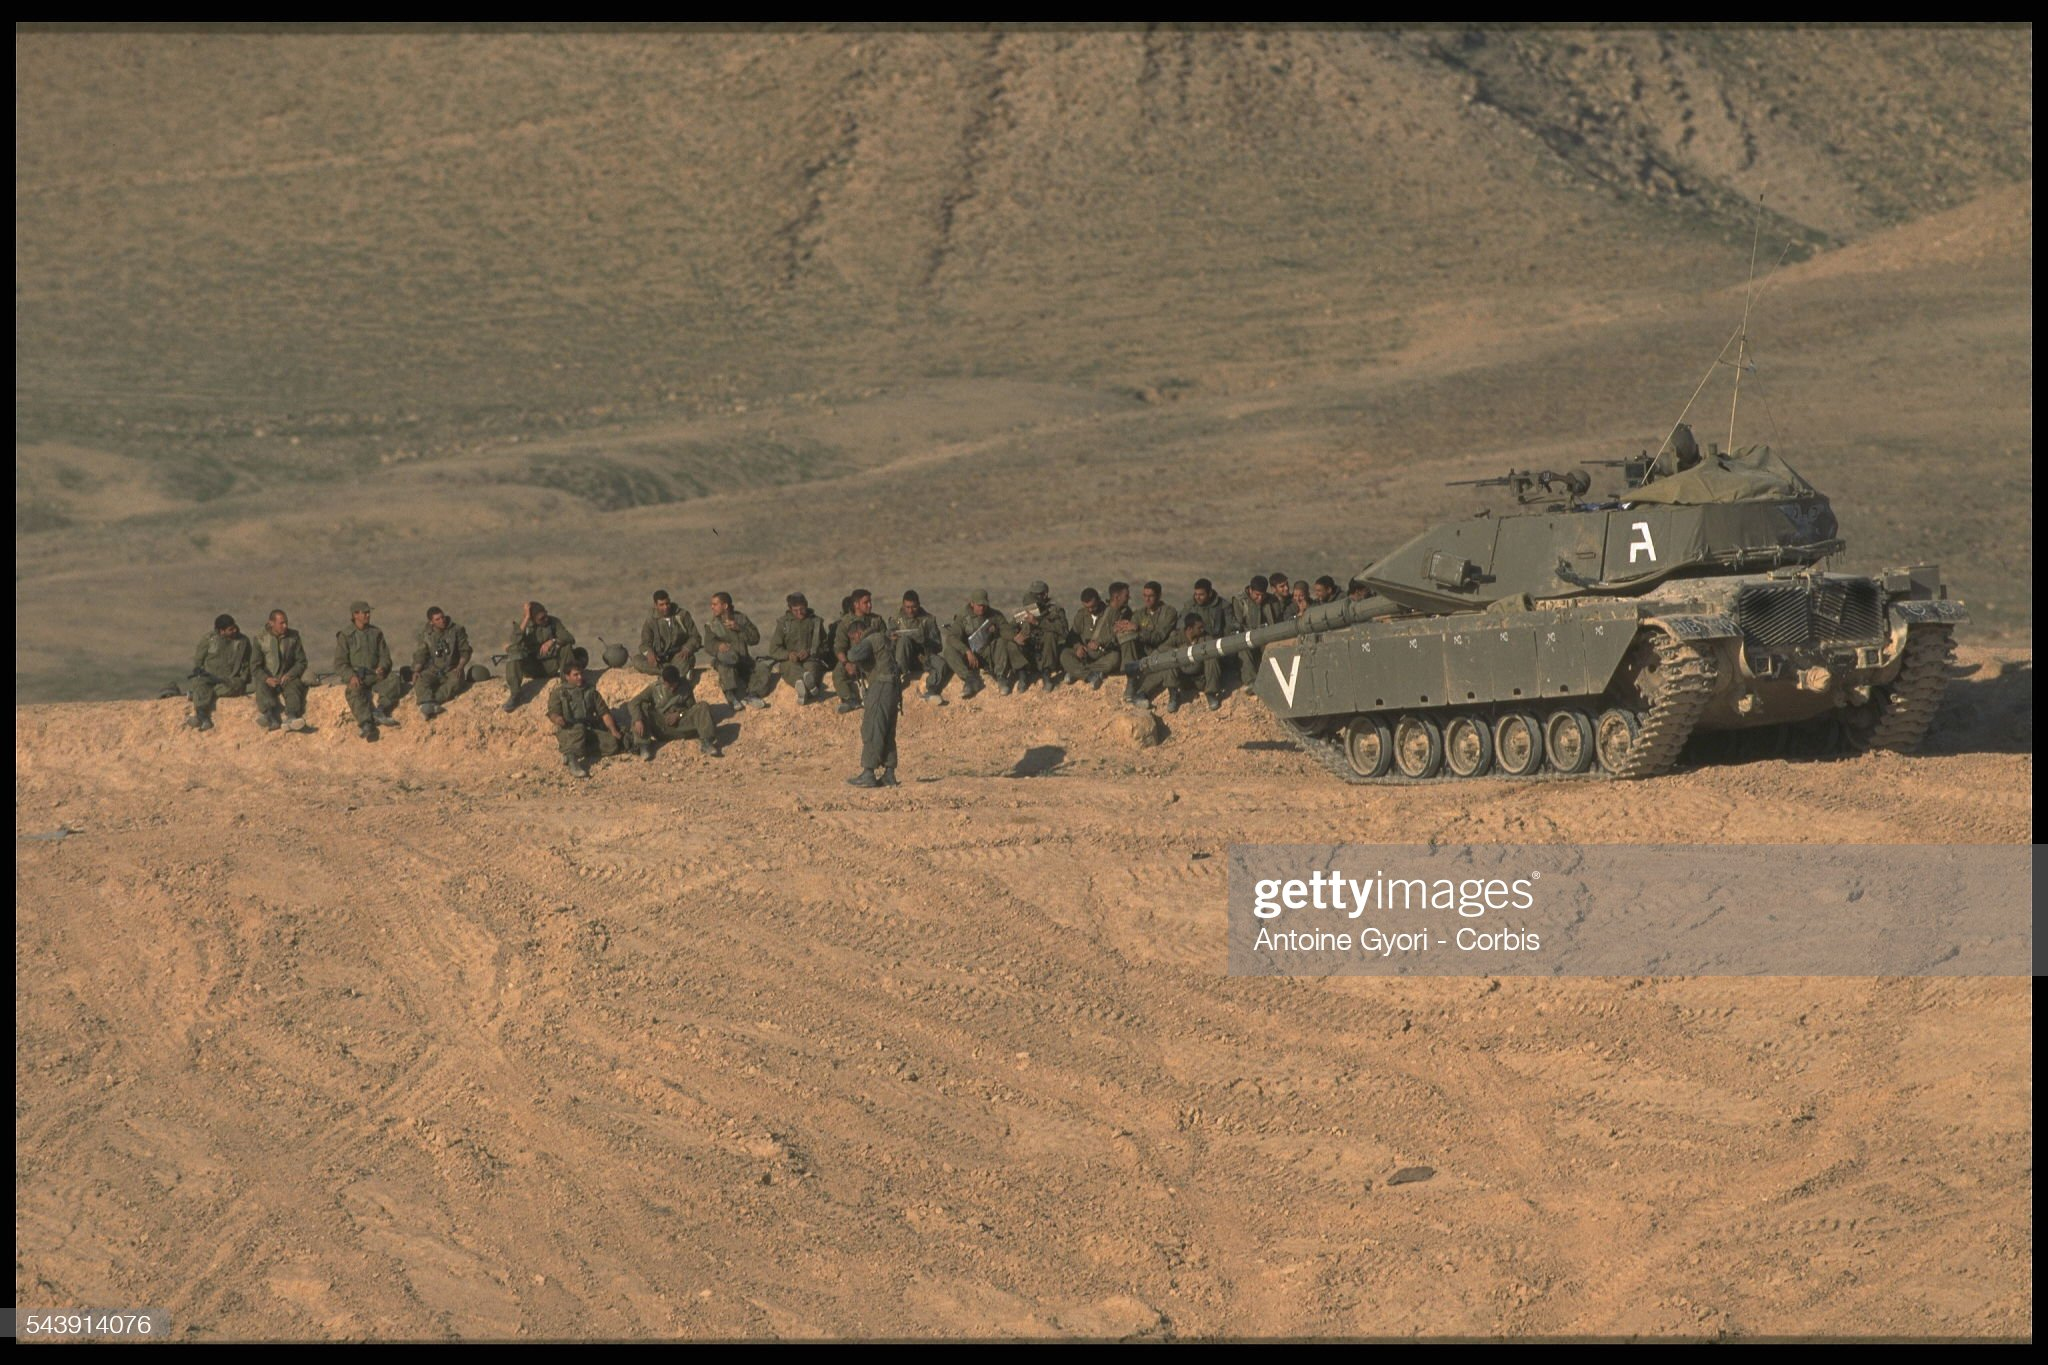 https://media.gettyimages.com/photos/soldiers-by-a-merkava-tank-picture-id543914076?s=2048x2048